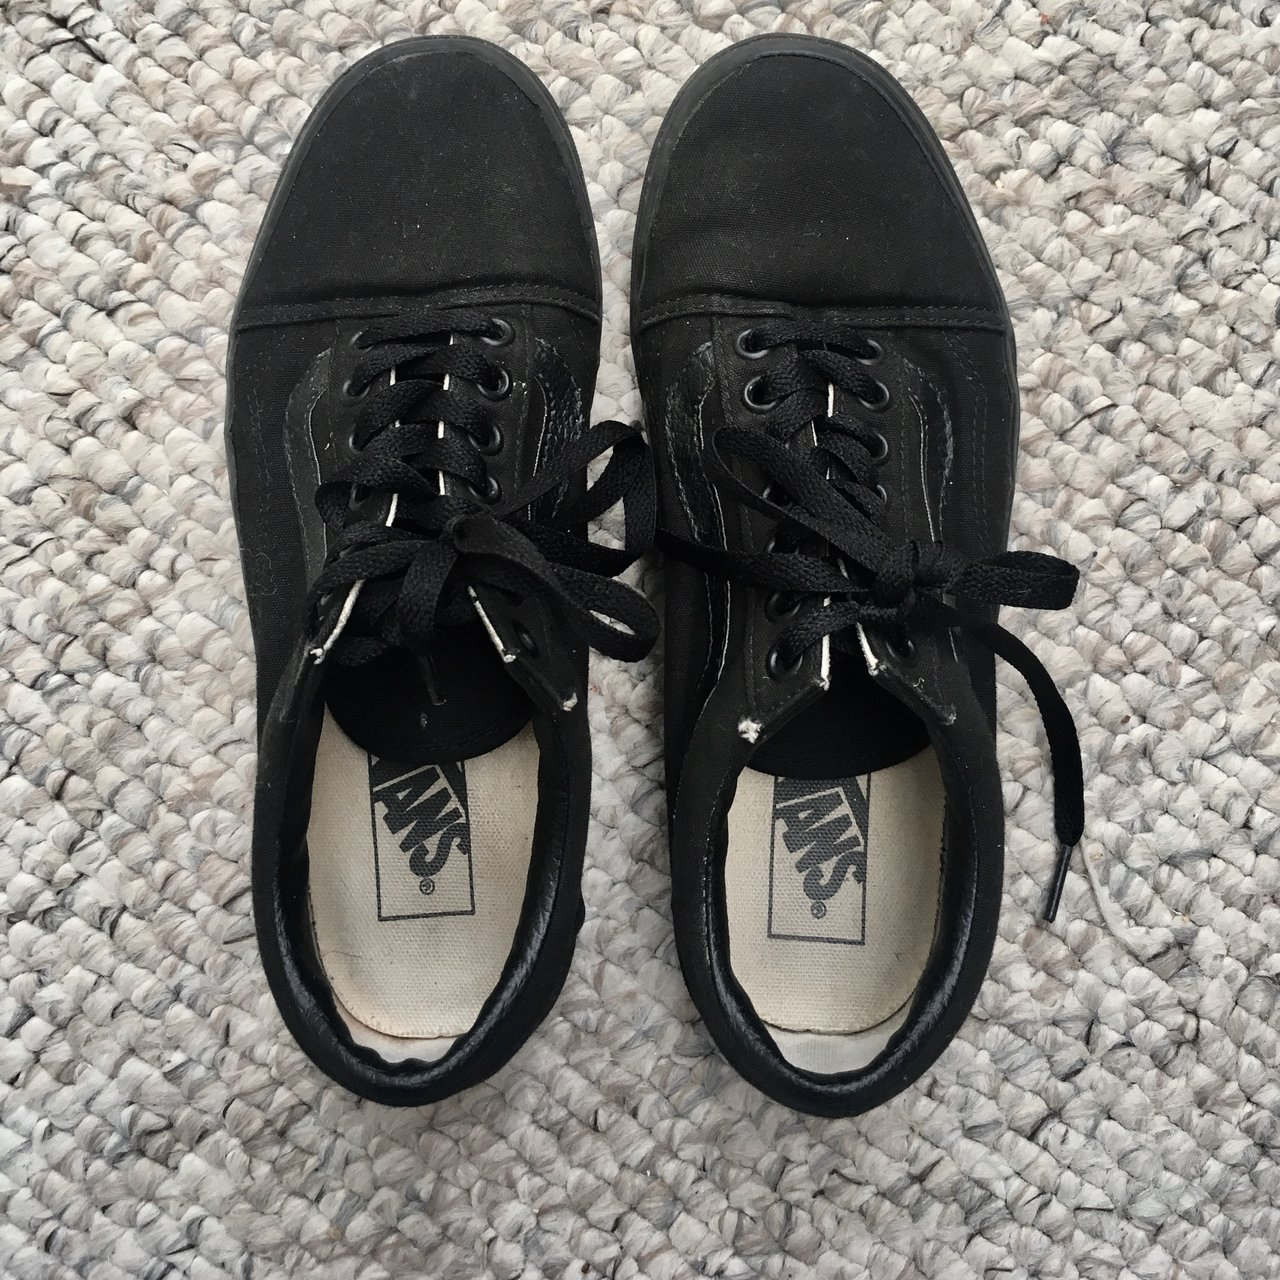 7963e84669e42e Old school all black Vans - perfect condition as only worn a - Depop